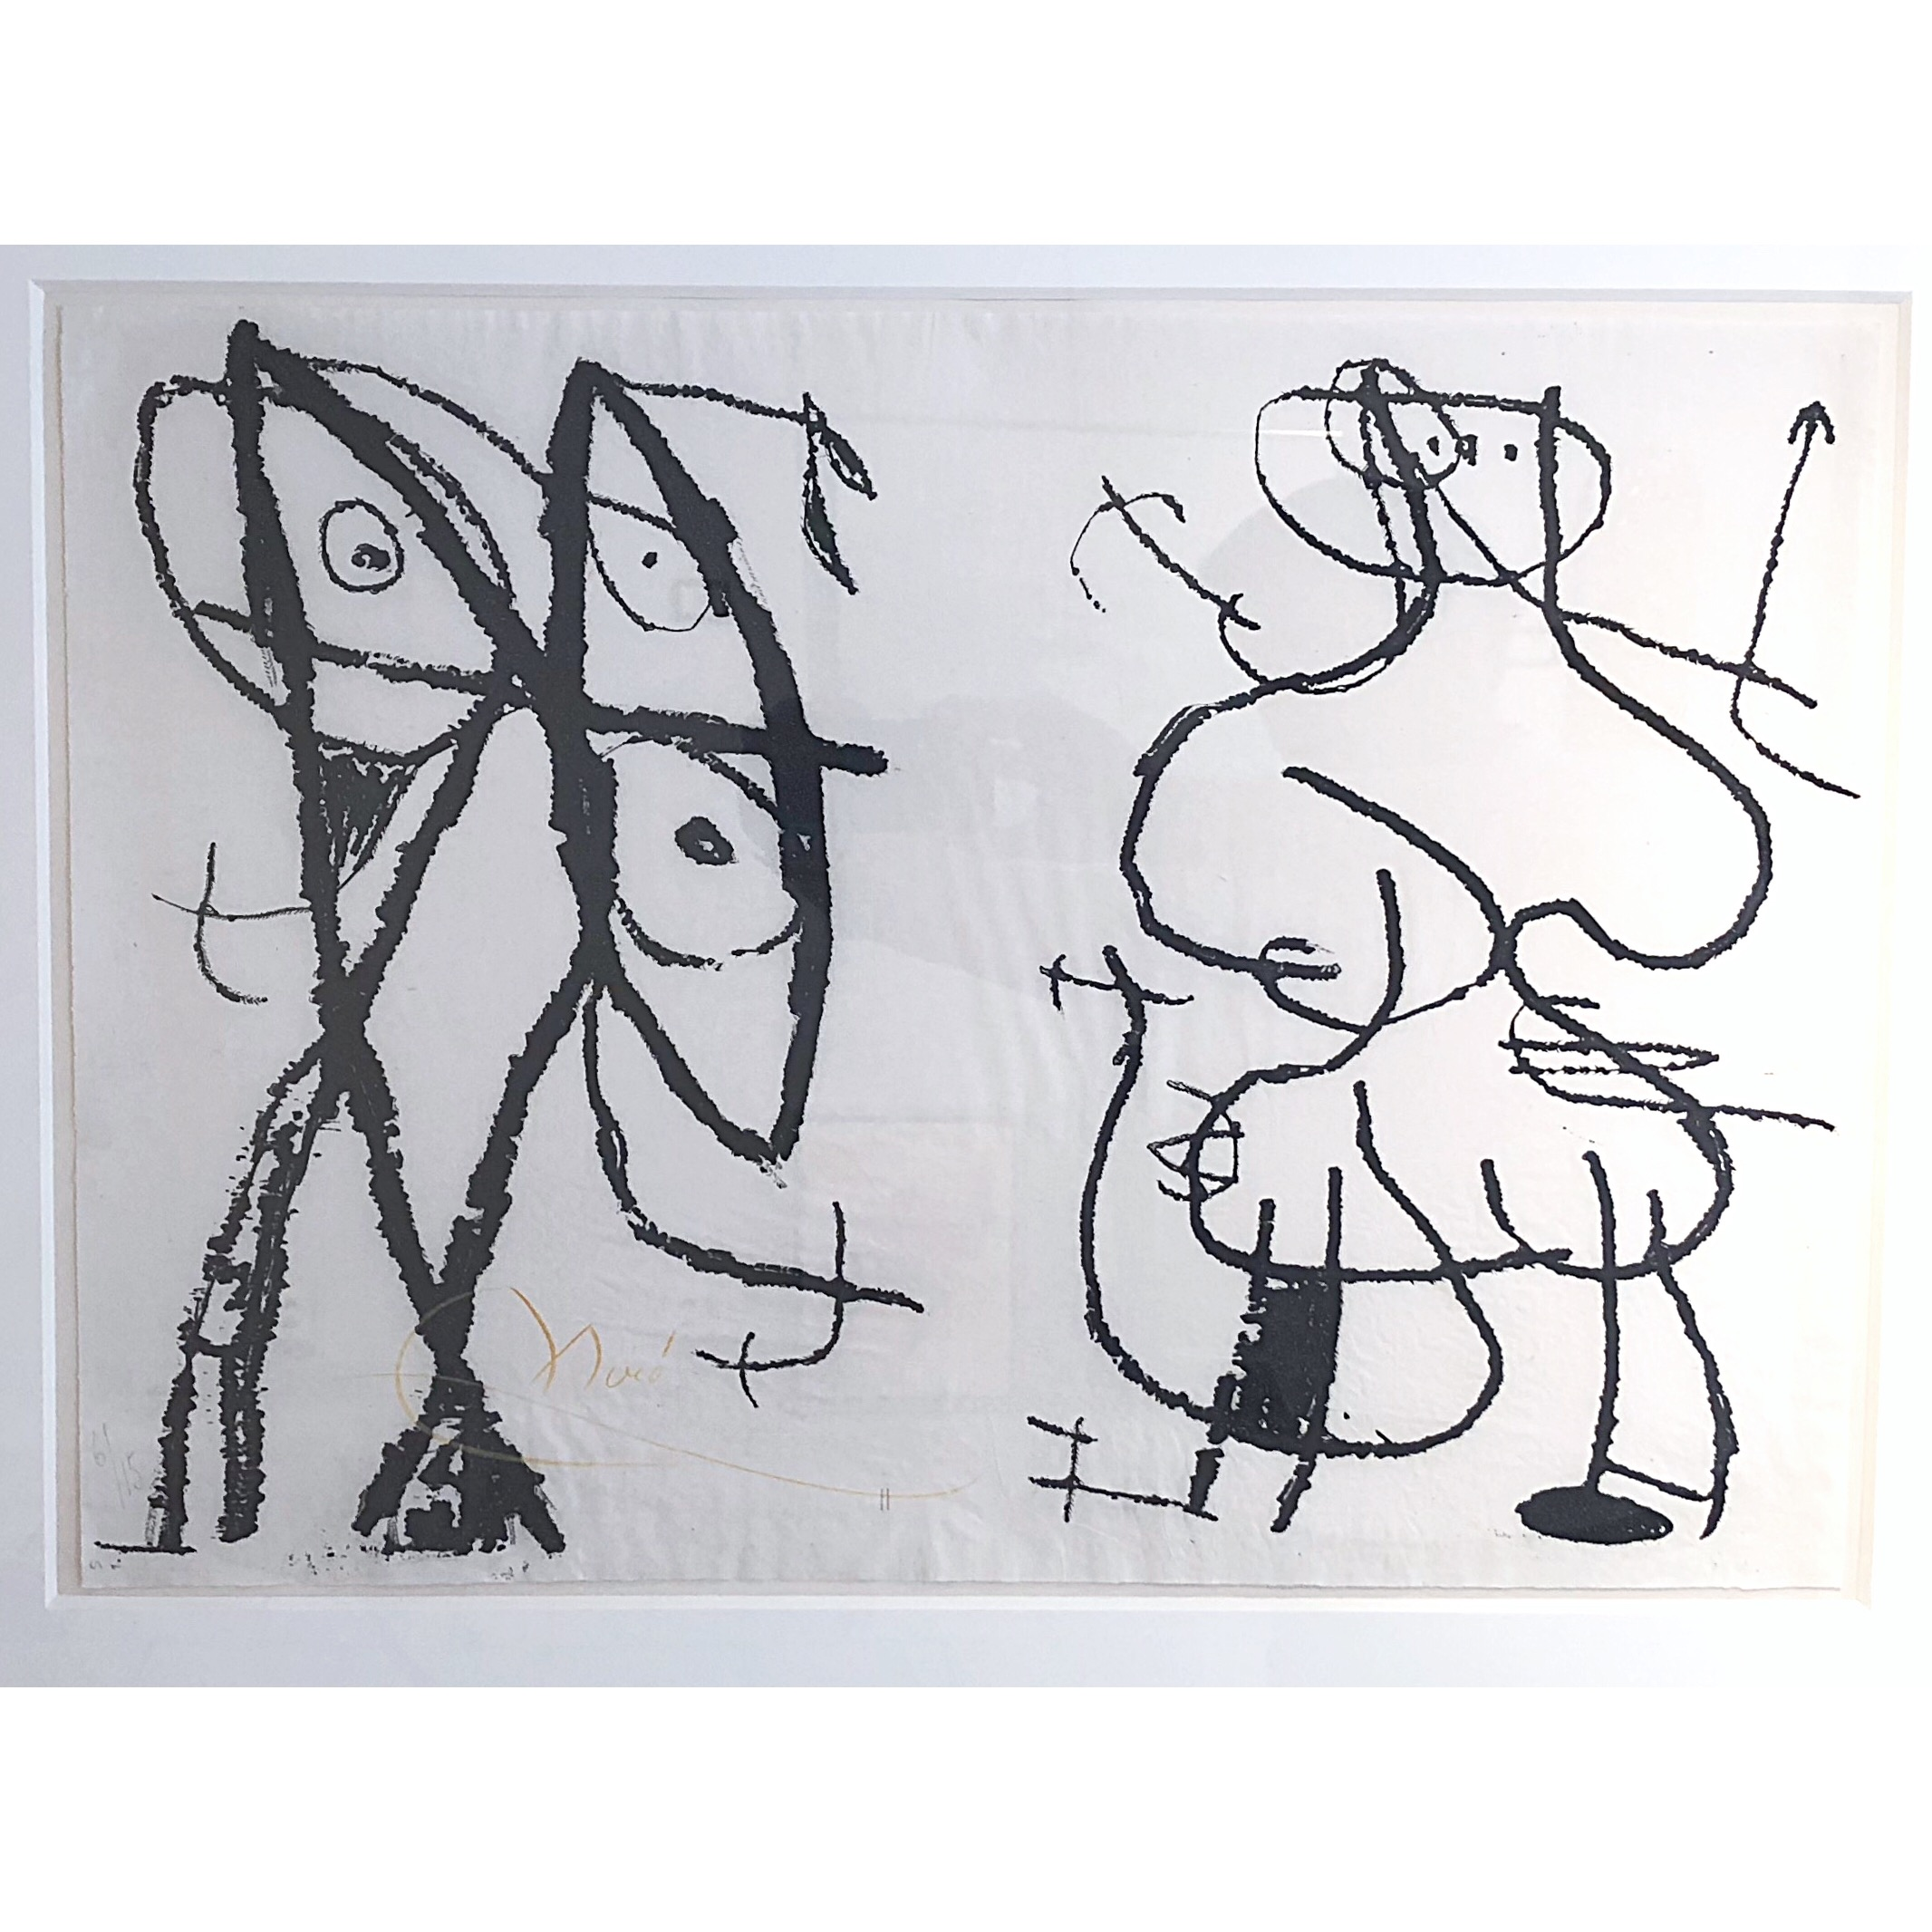 """Le Artisan Grotesque"" Etching by Joan Miró. 77x62 cm"